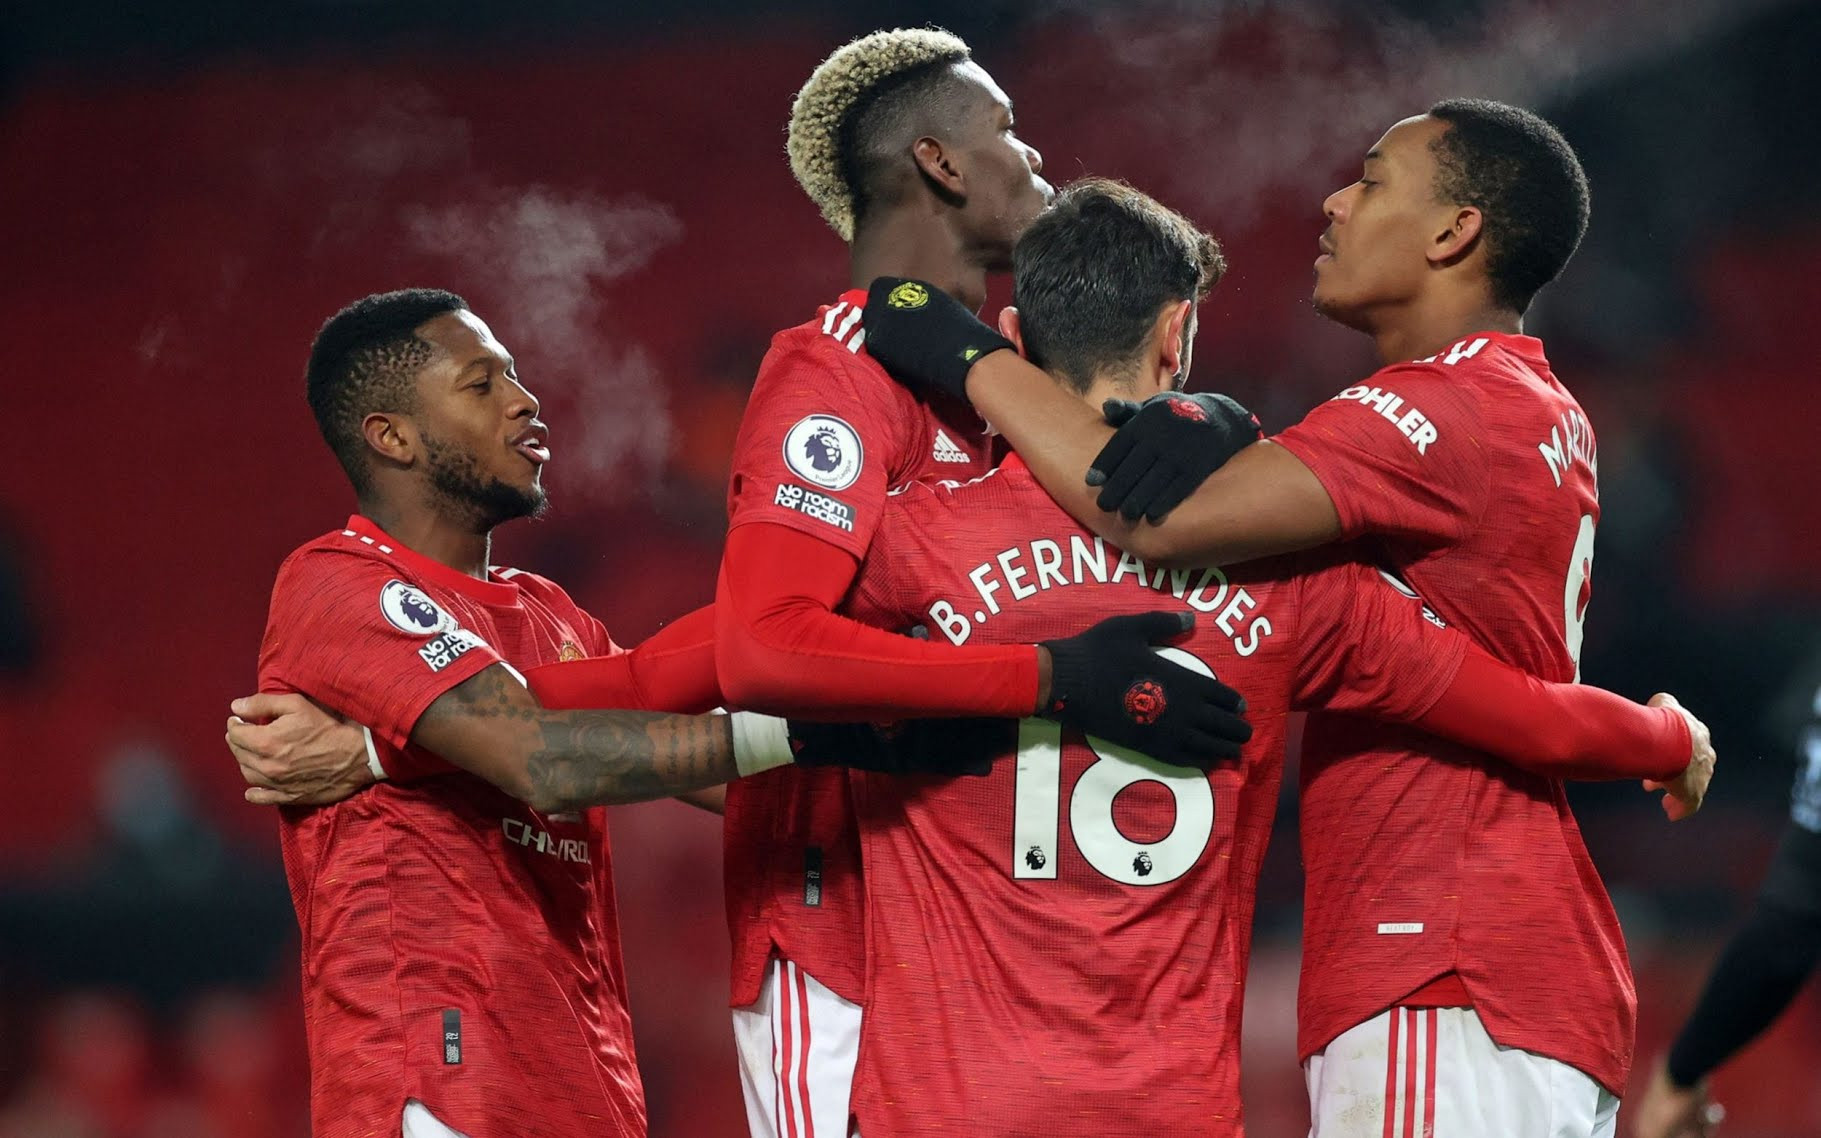 Man Utd go top of table, level on points with Liverpool after 2-1 win pulsating win over Aston Villa